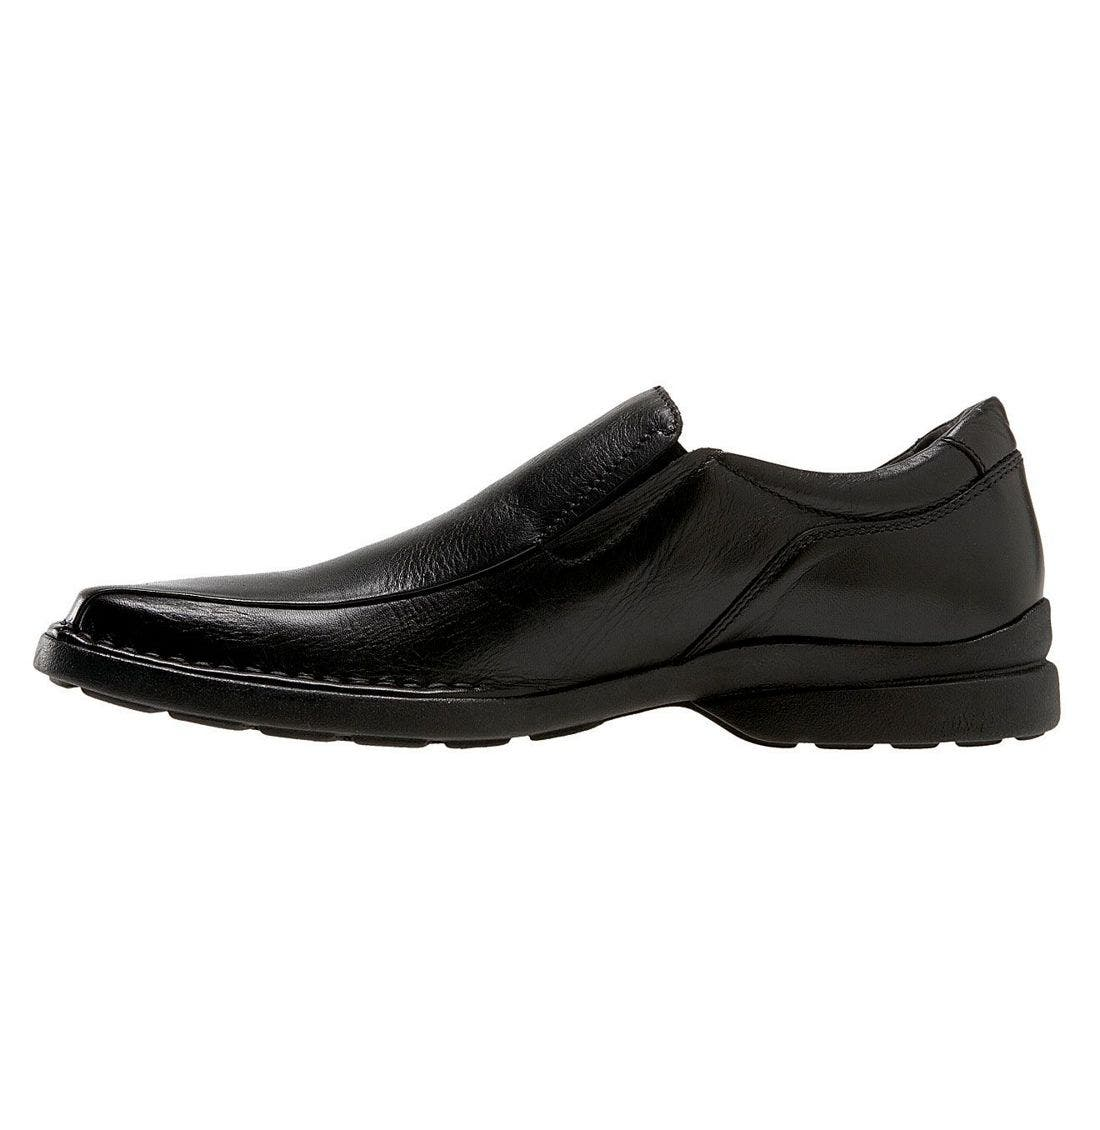 Alternate Image 2  - Kenneth Cole Reaction 'Punchual' Slip-On